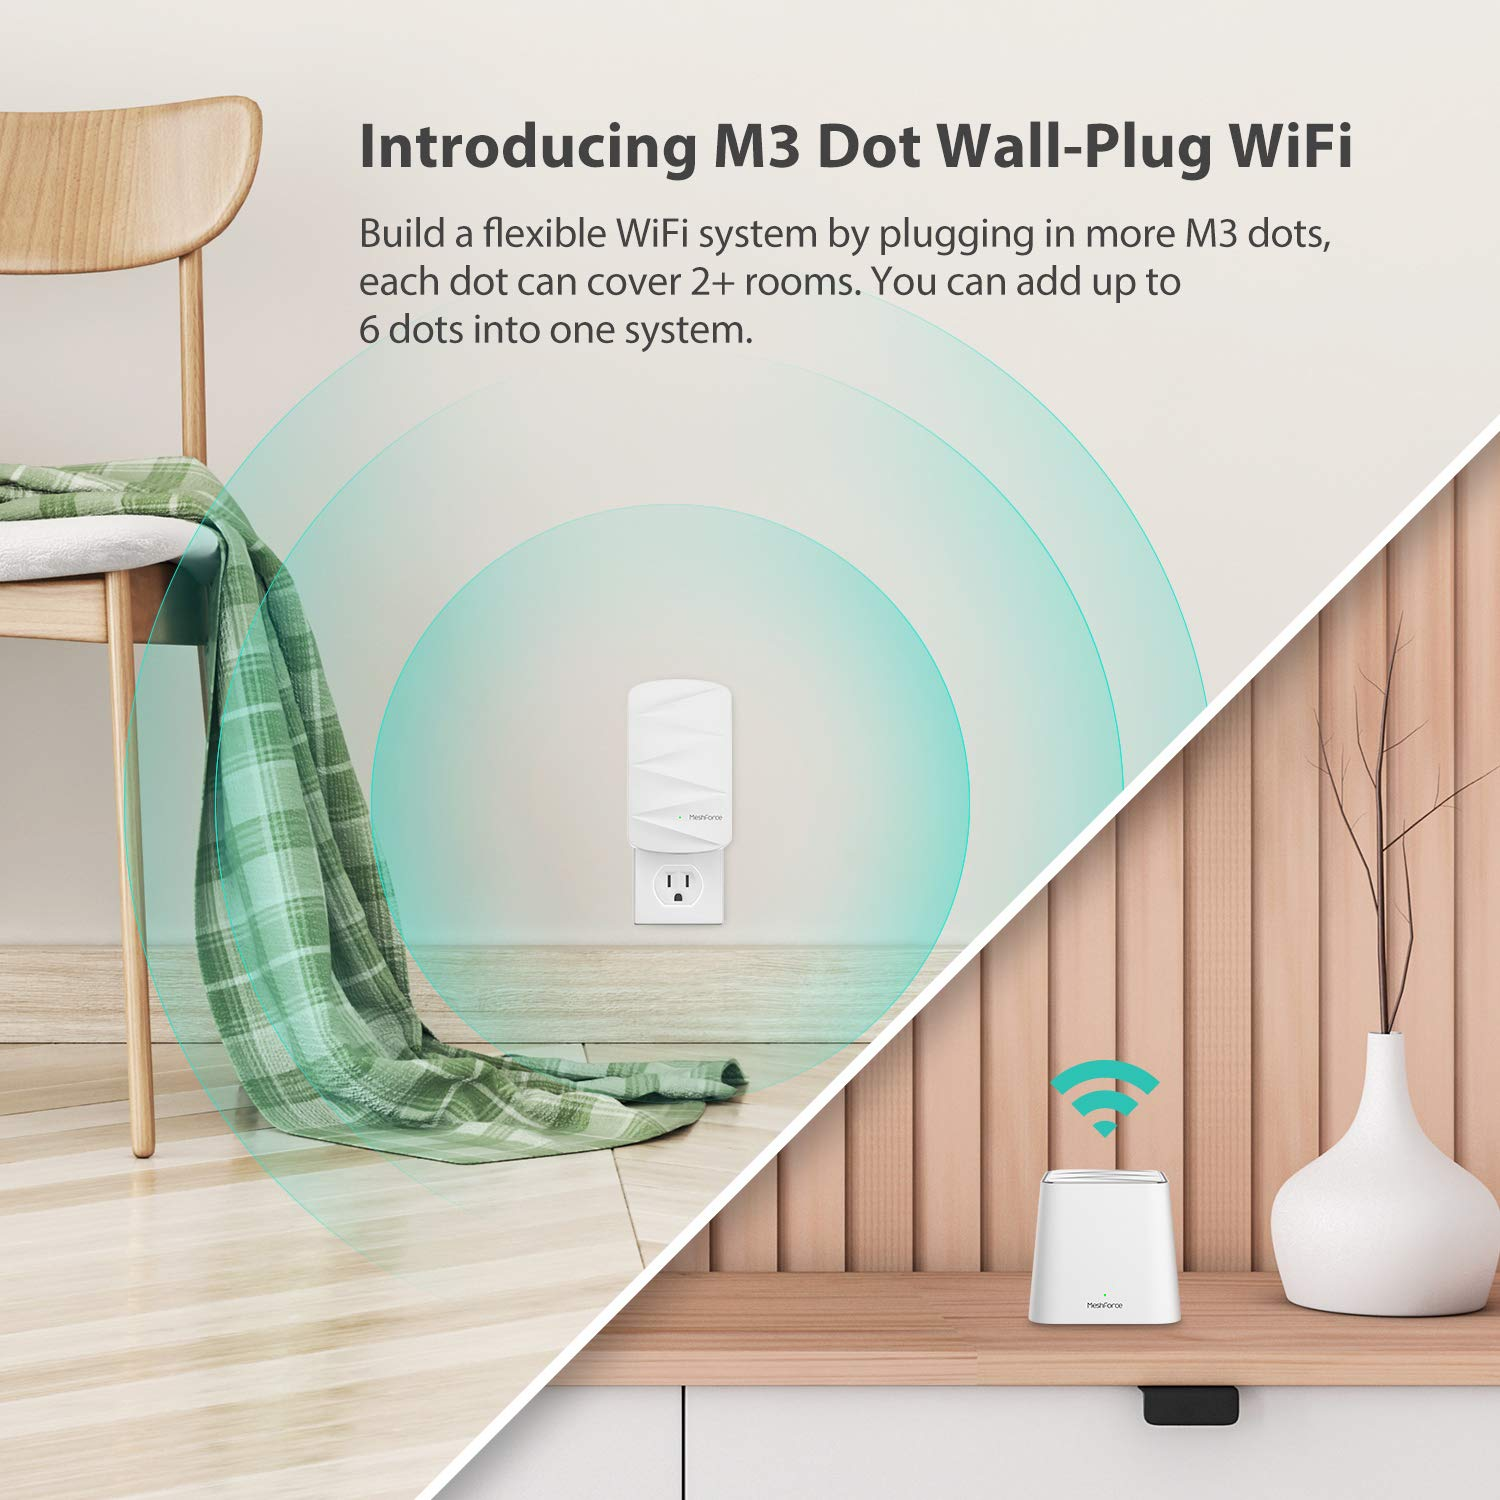 MeshForce Whole Home Mesh WiFi System M3 Suite (1 WiFi Point + 2 WiFi Dot) - Dual Band WiFi System Router Replacement and Wall Plug Extender - High Performance Wireless Coverage for 5+ Bedrooms Home by Meshforce (Image #3)